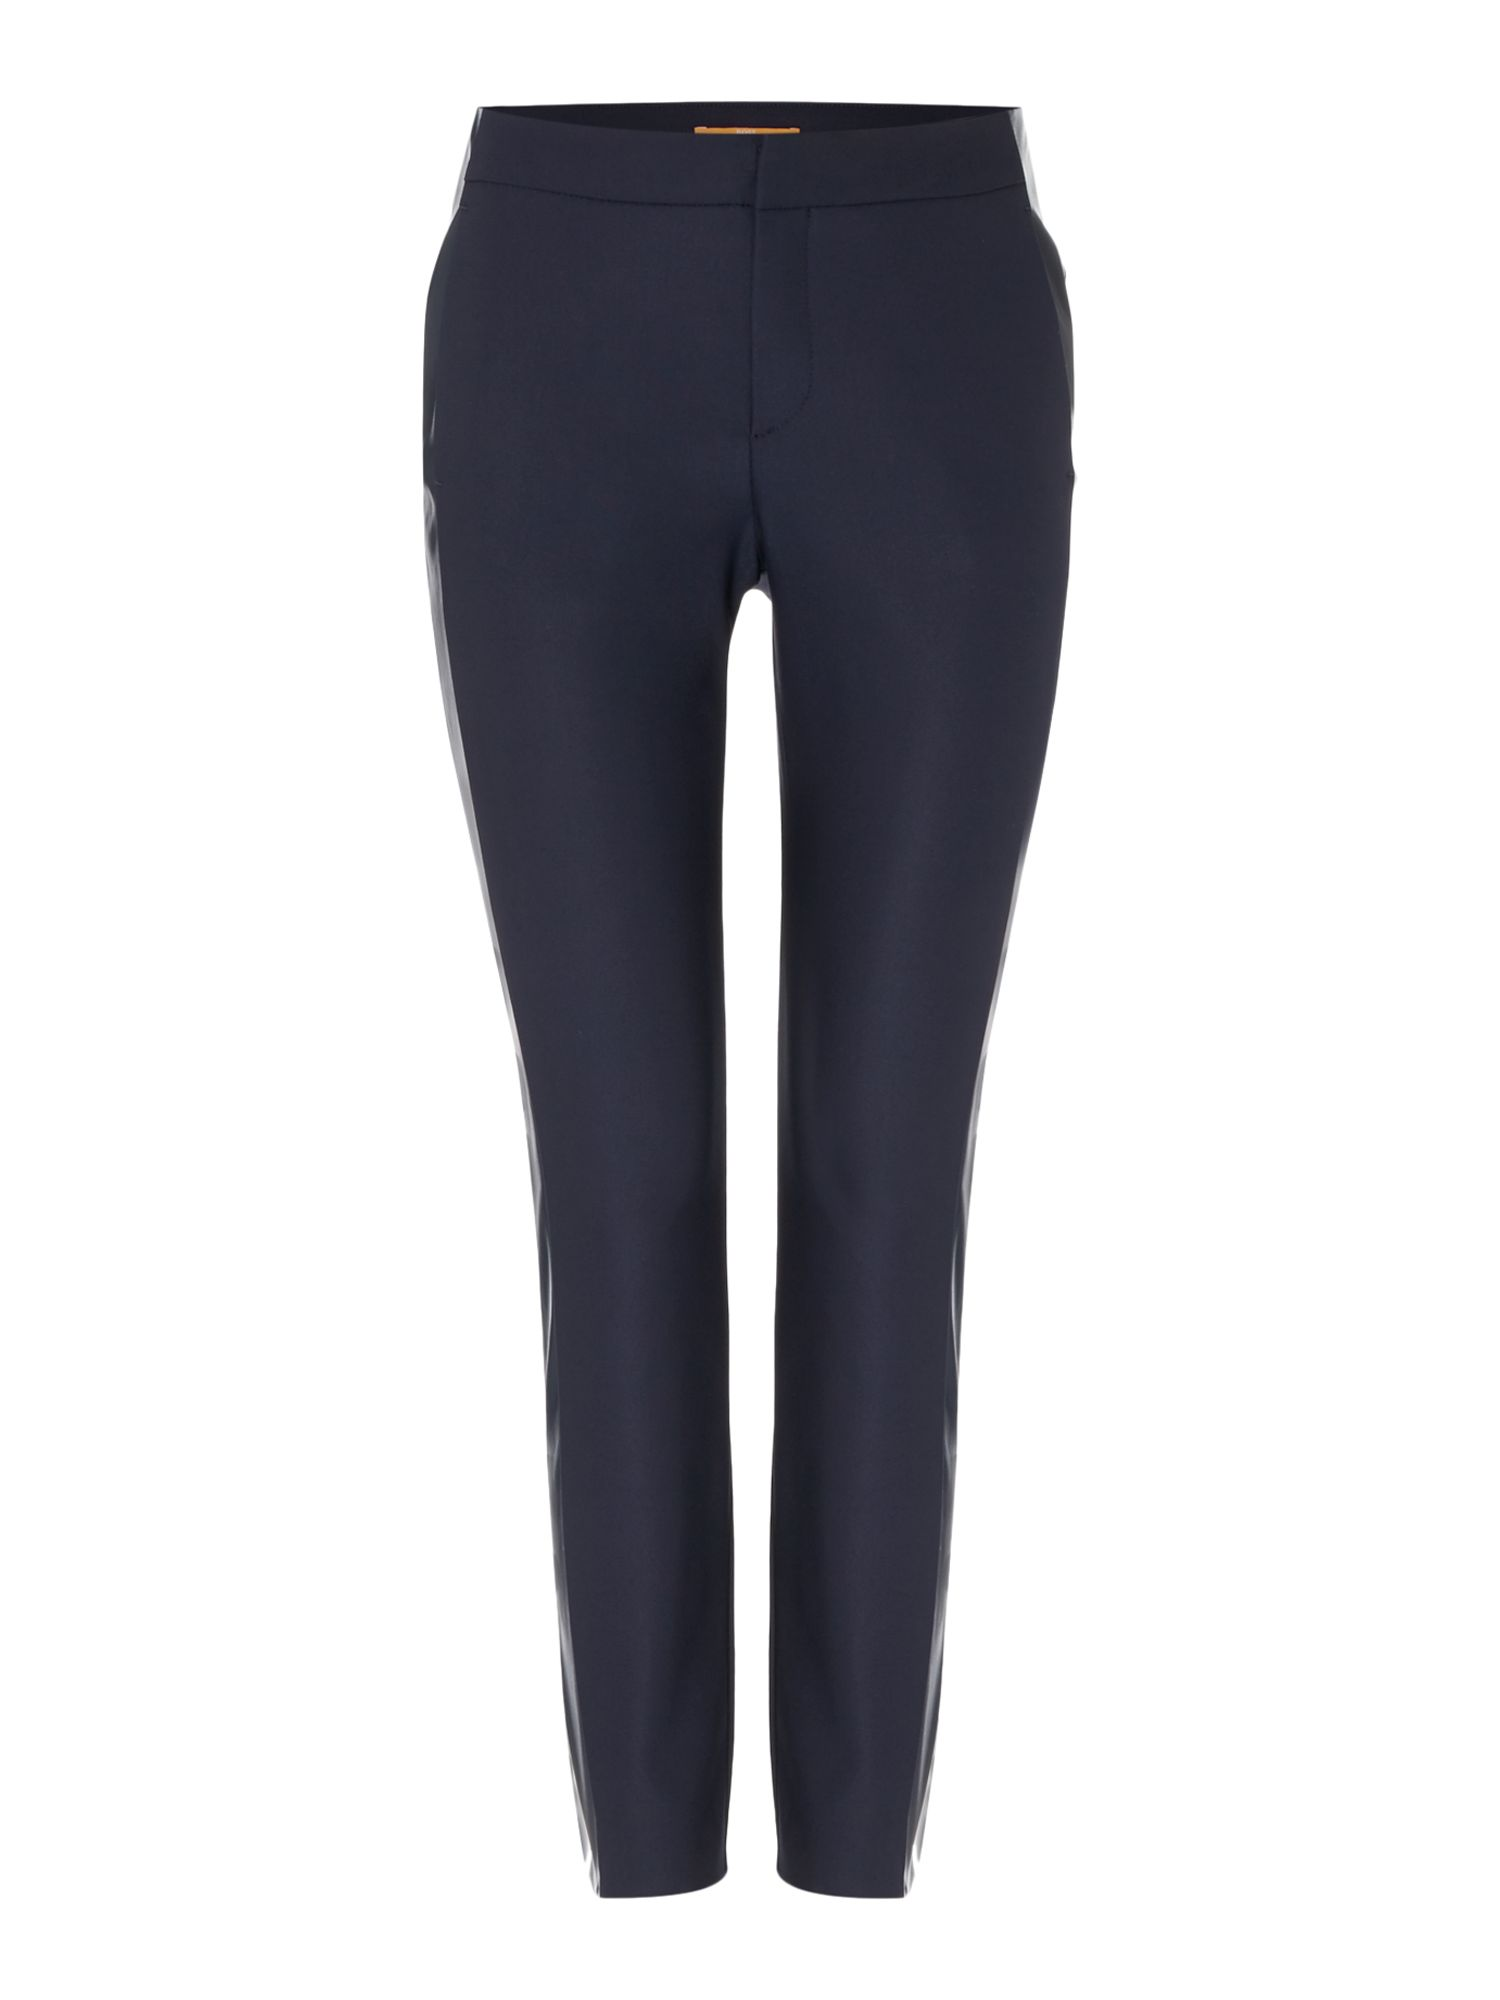 Hugo Boss Siledana Straight Trousers in Dark Blue, Dark Blue